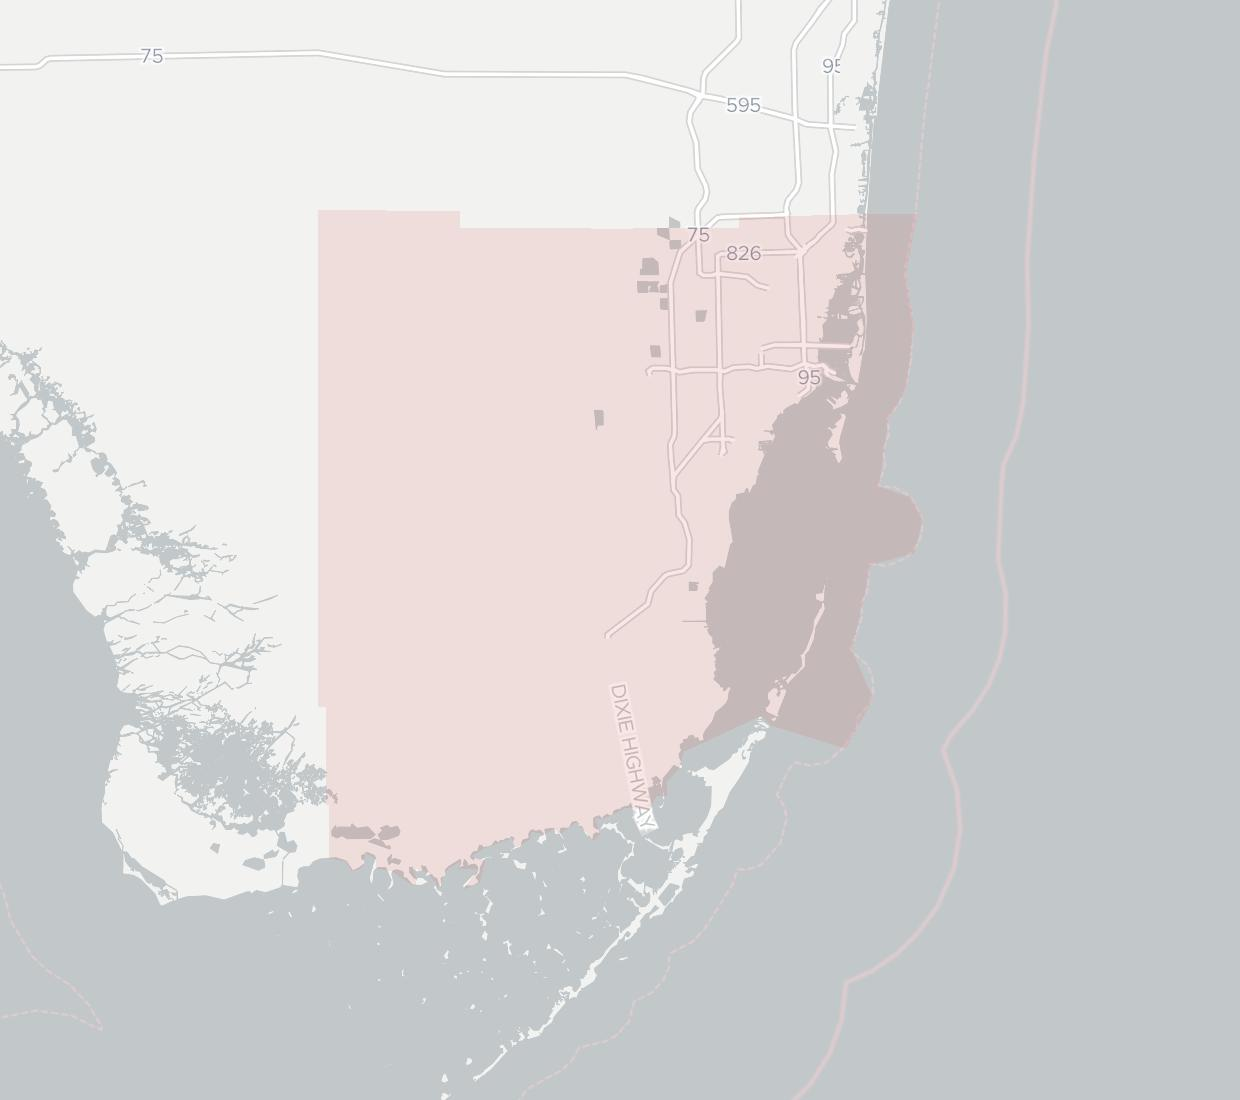 ITP Fiber Availability Map. Click for interactive map.